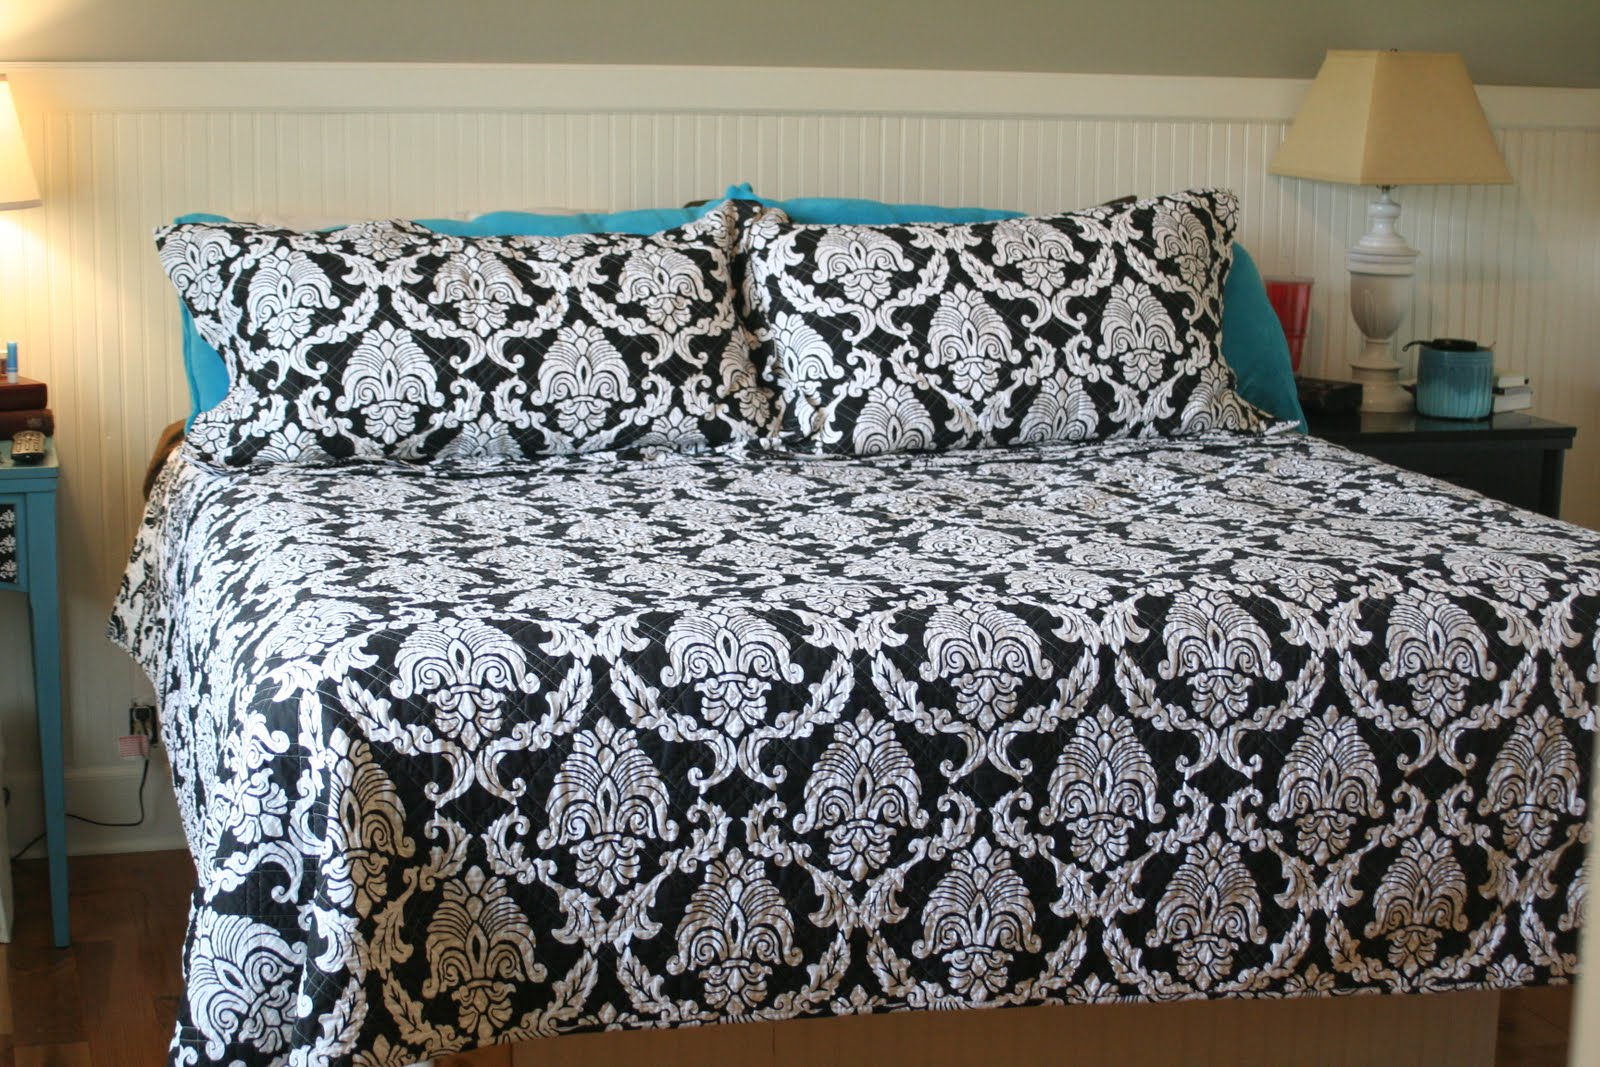 Dillards Mattress Sale have posted several pictures of the way our bedroom looked ...